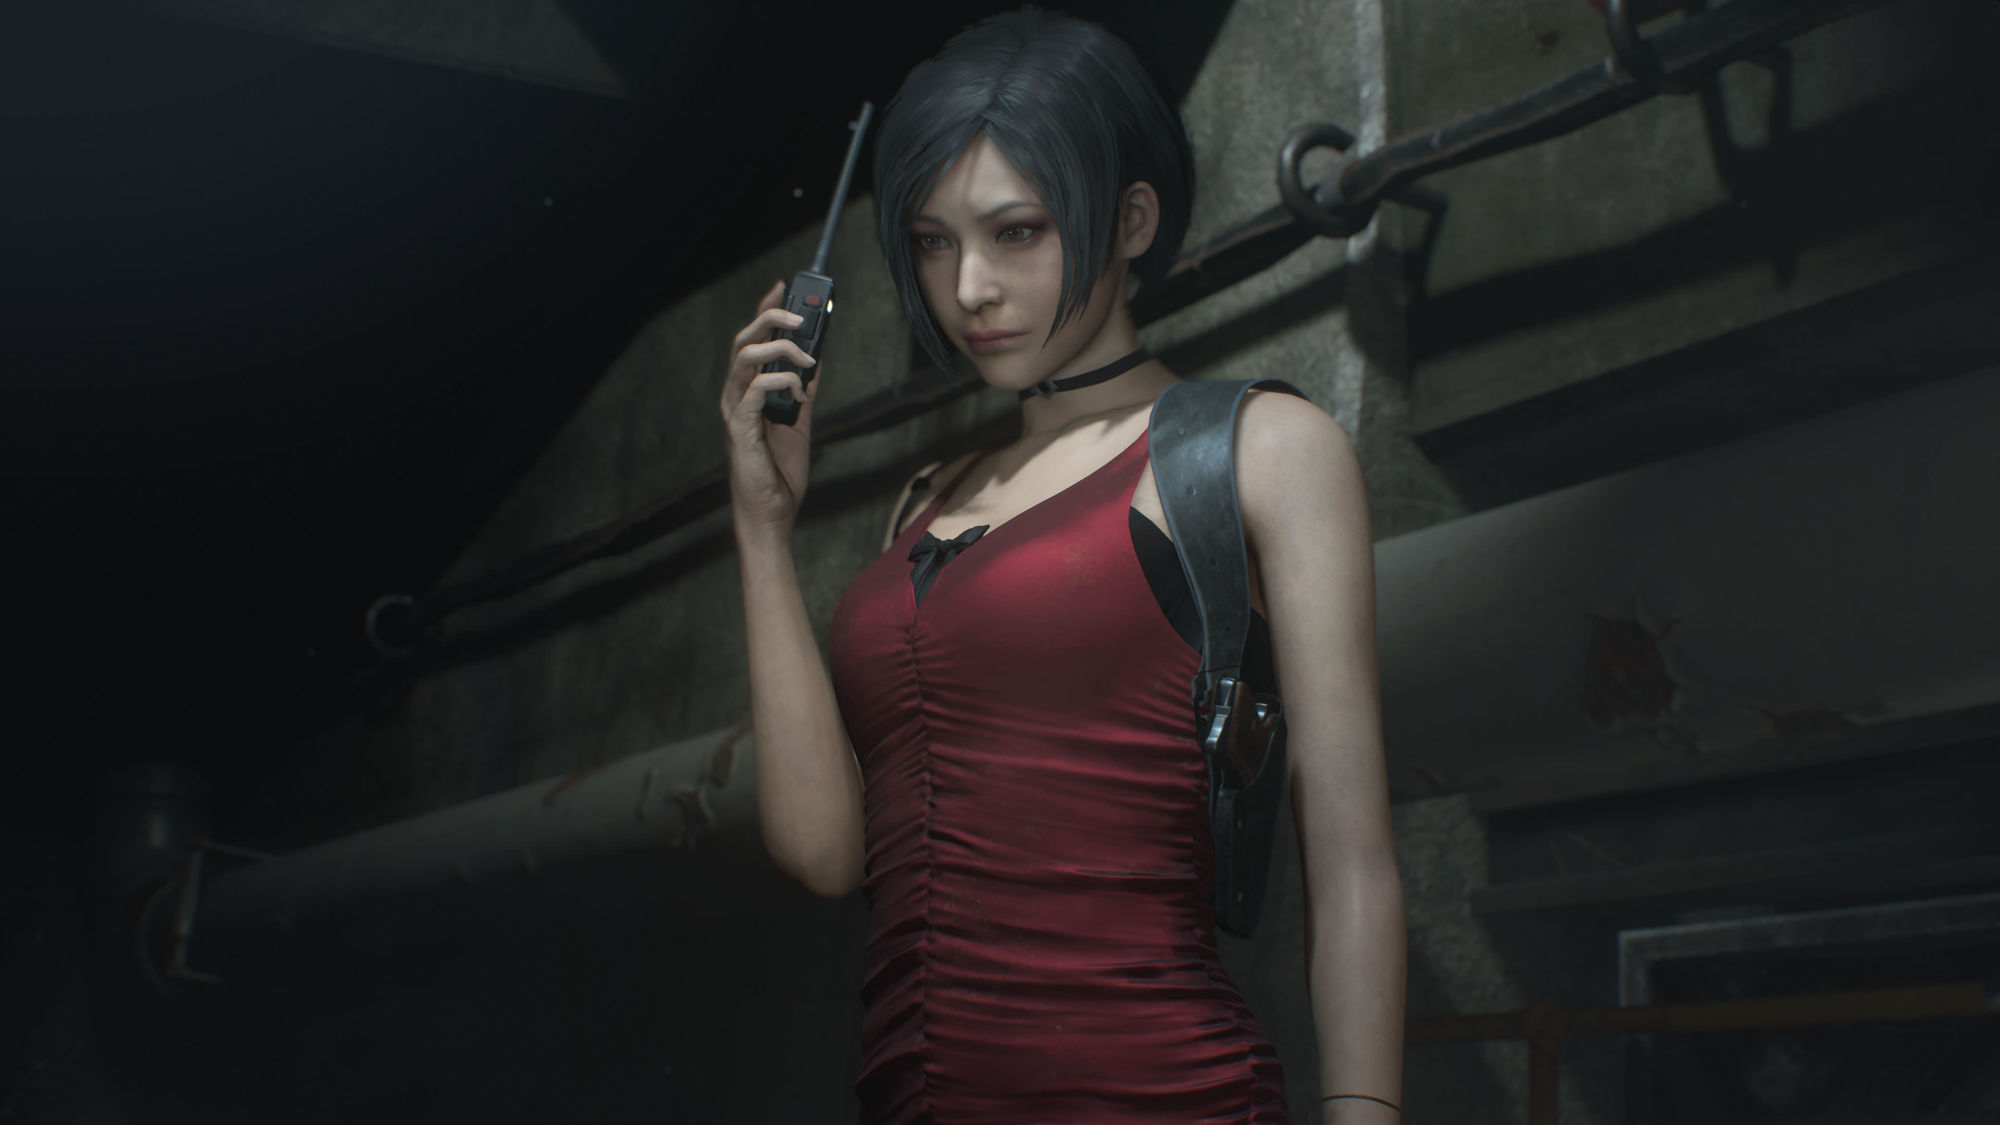 New Resident Evil 2 Images Surface Featuring Ada Wong